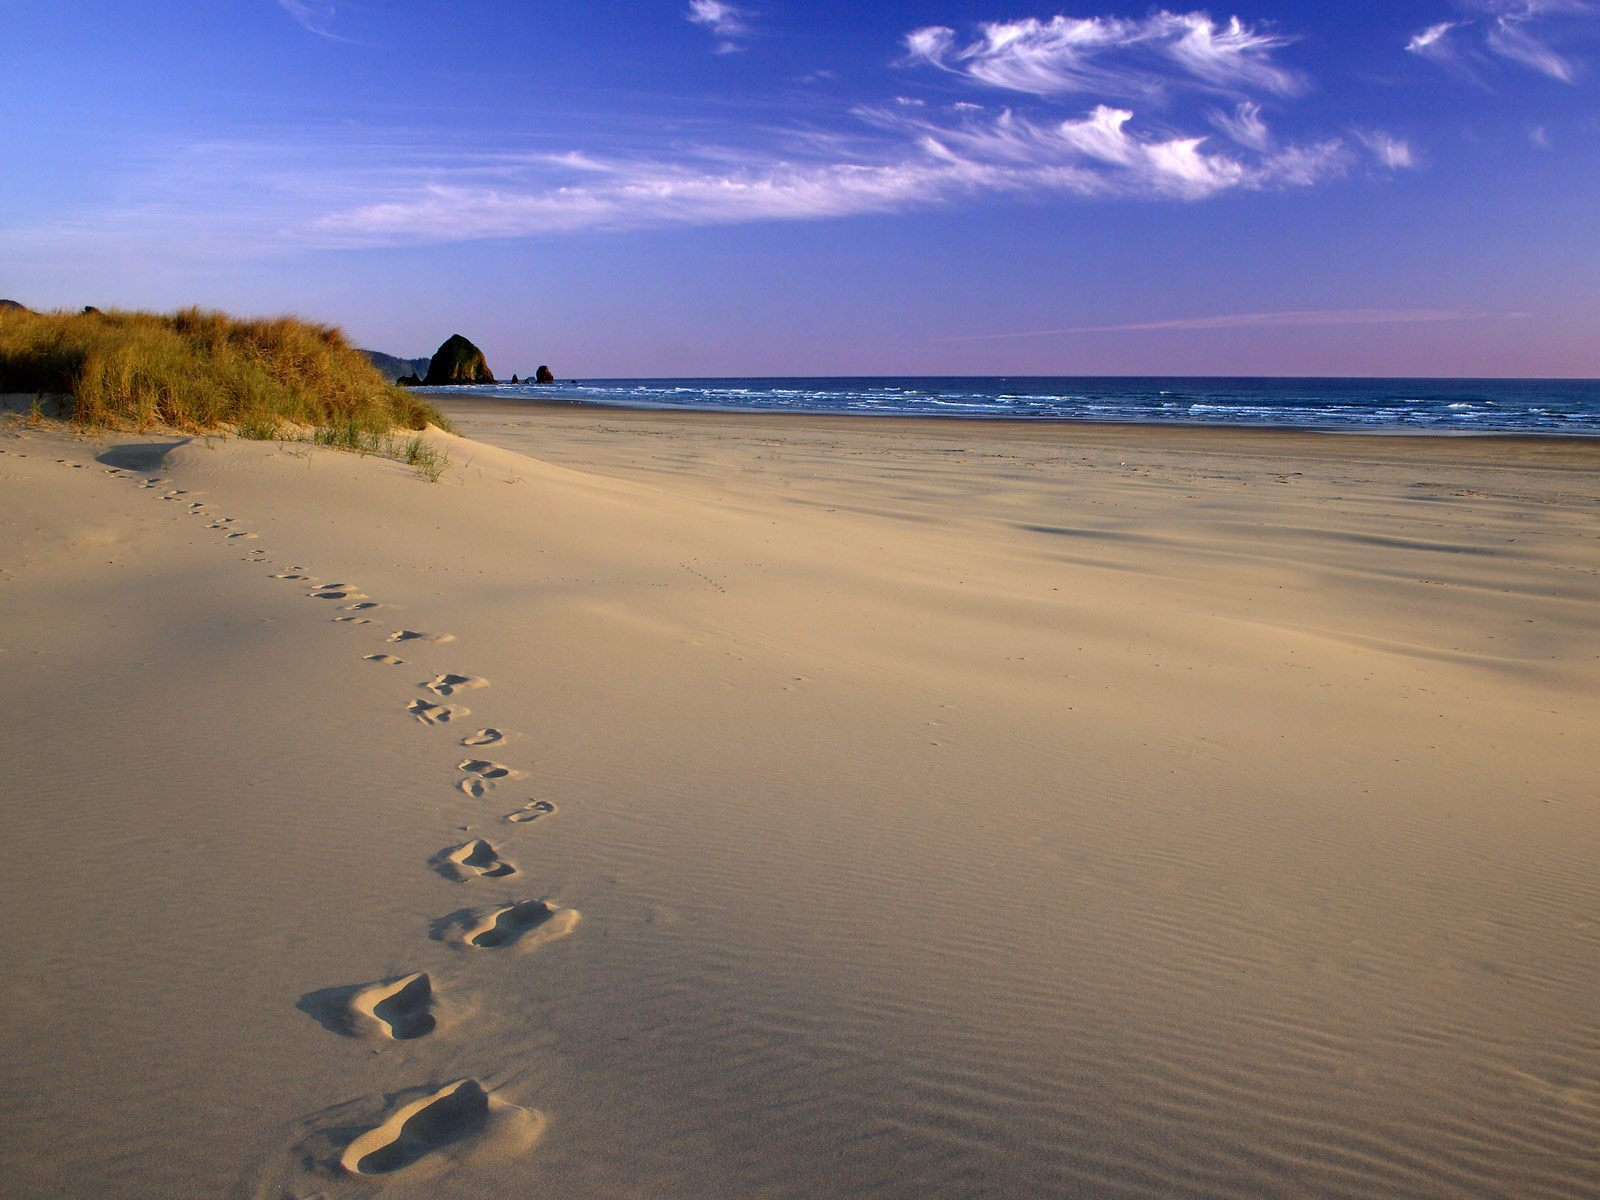 Footprints in the sand wallpapers and images   wallpapers pictures 1600x1200